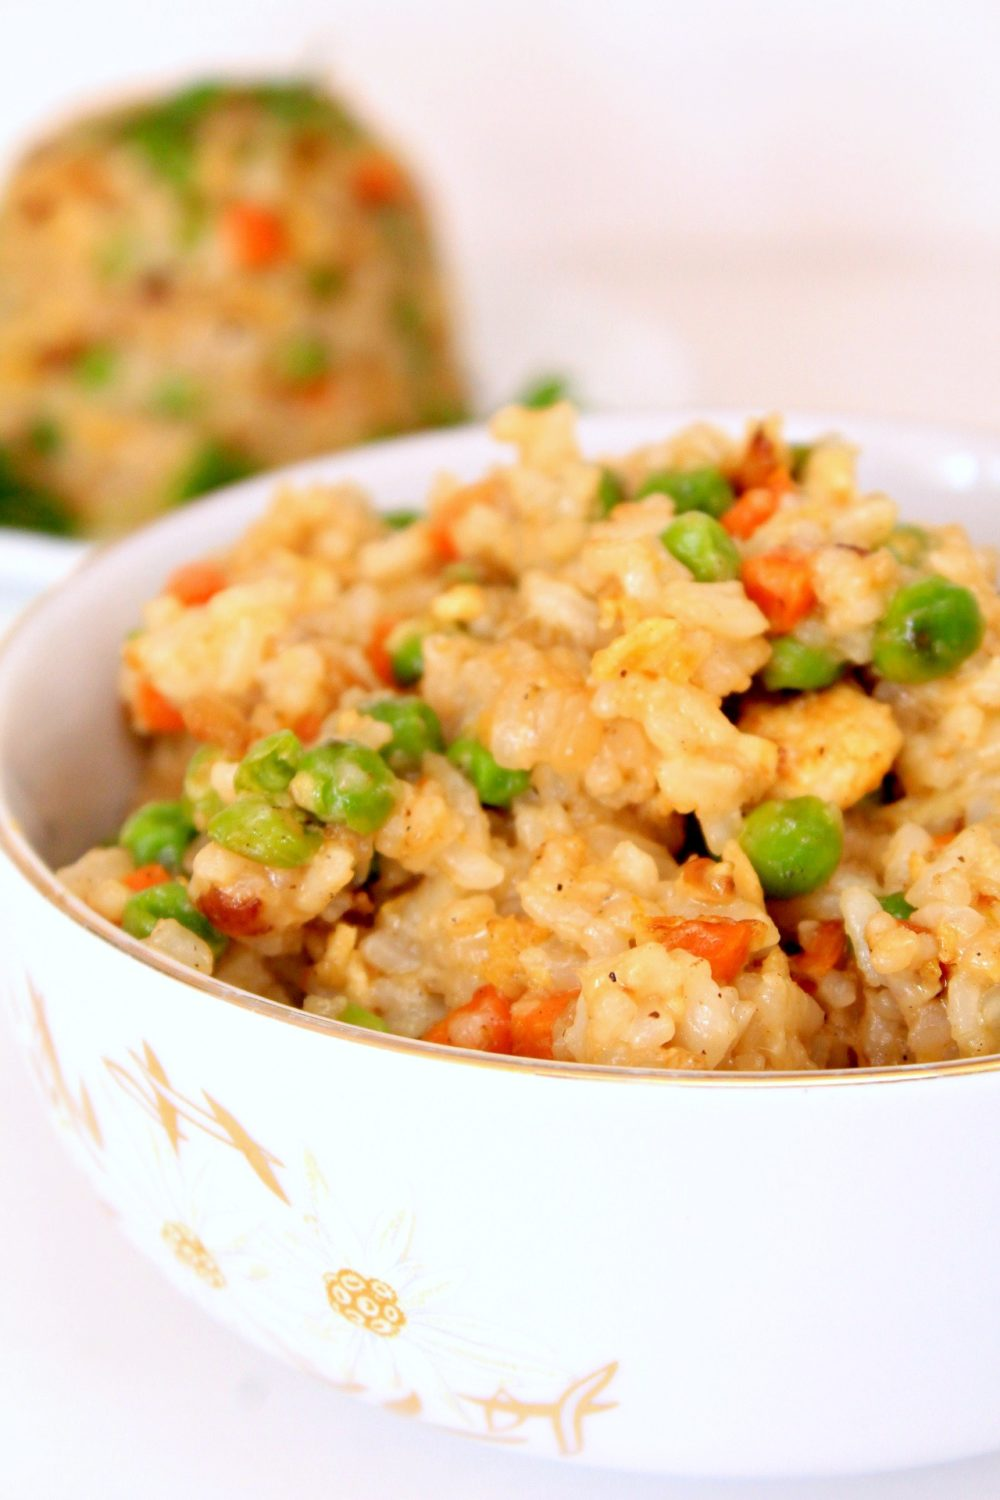 Image of vegetable egg fried rice recipe in a white bowl